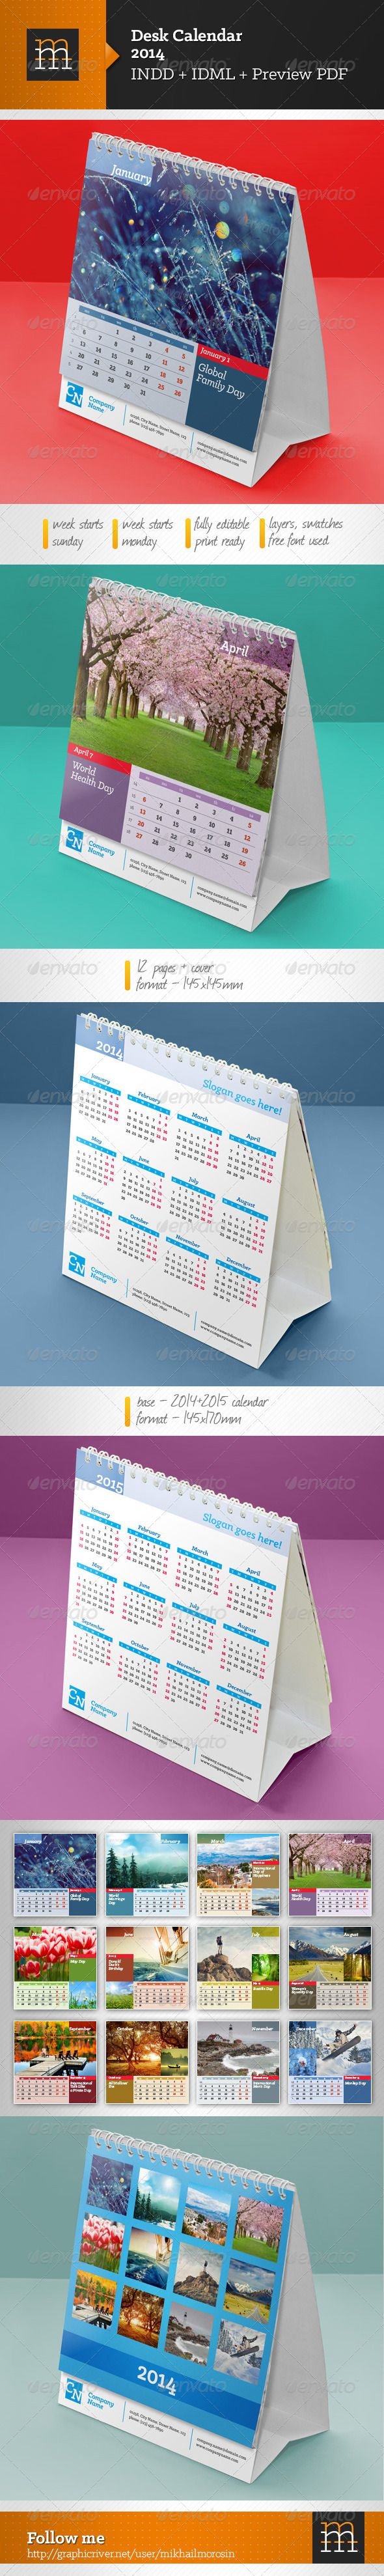 283 best Calendar images on Pinterest | Calendar design, Calendar ...